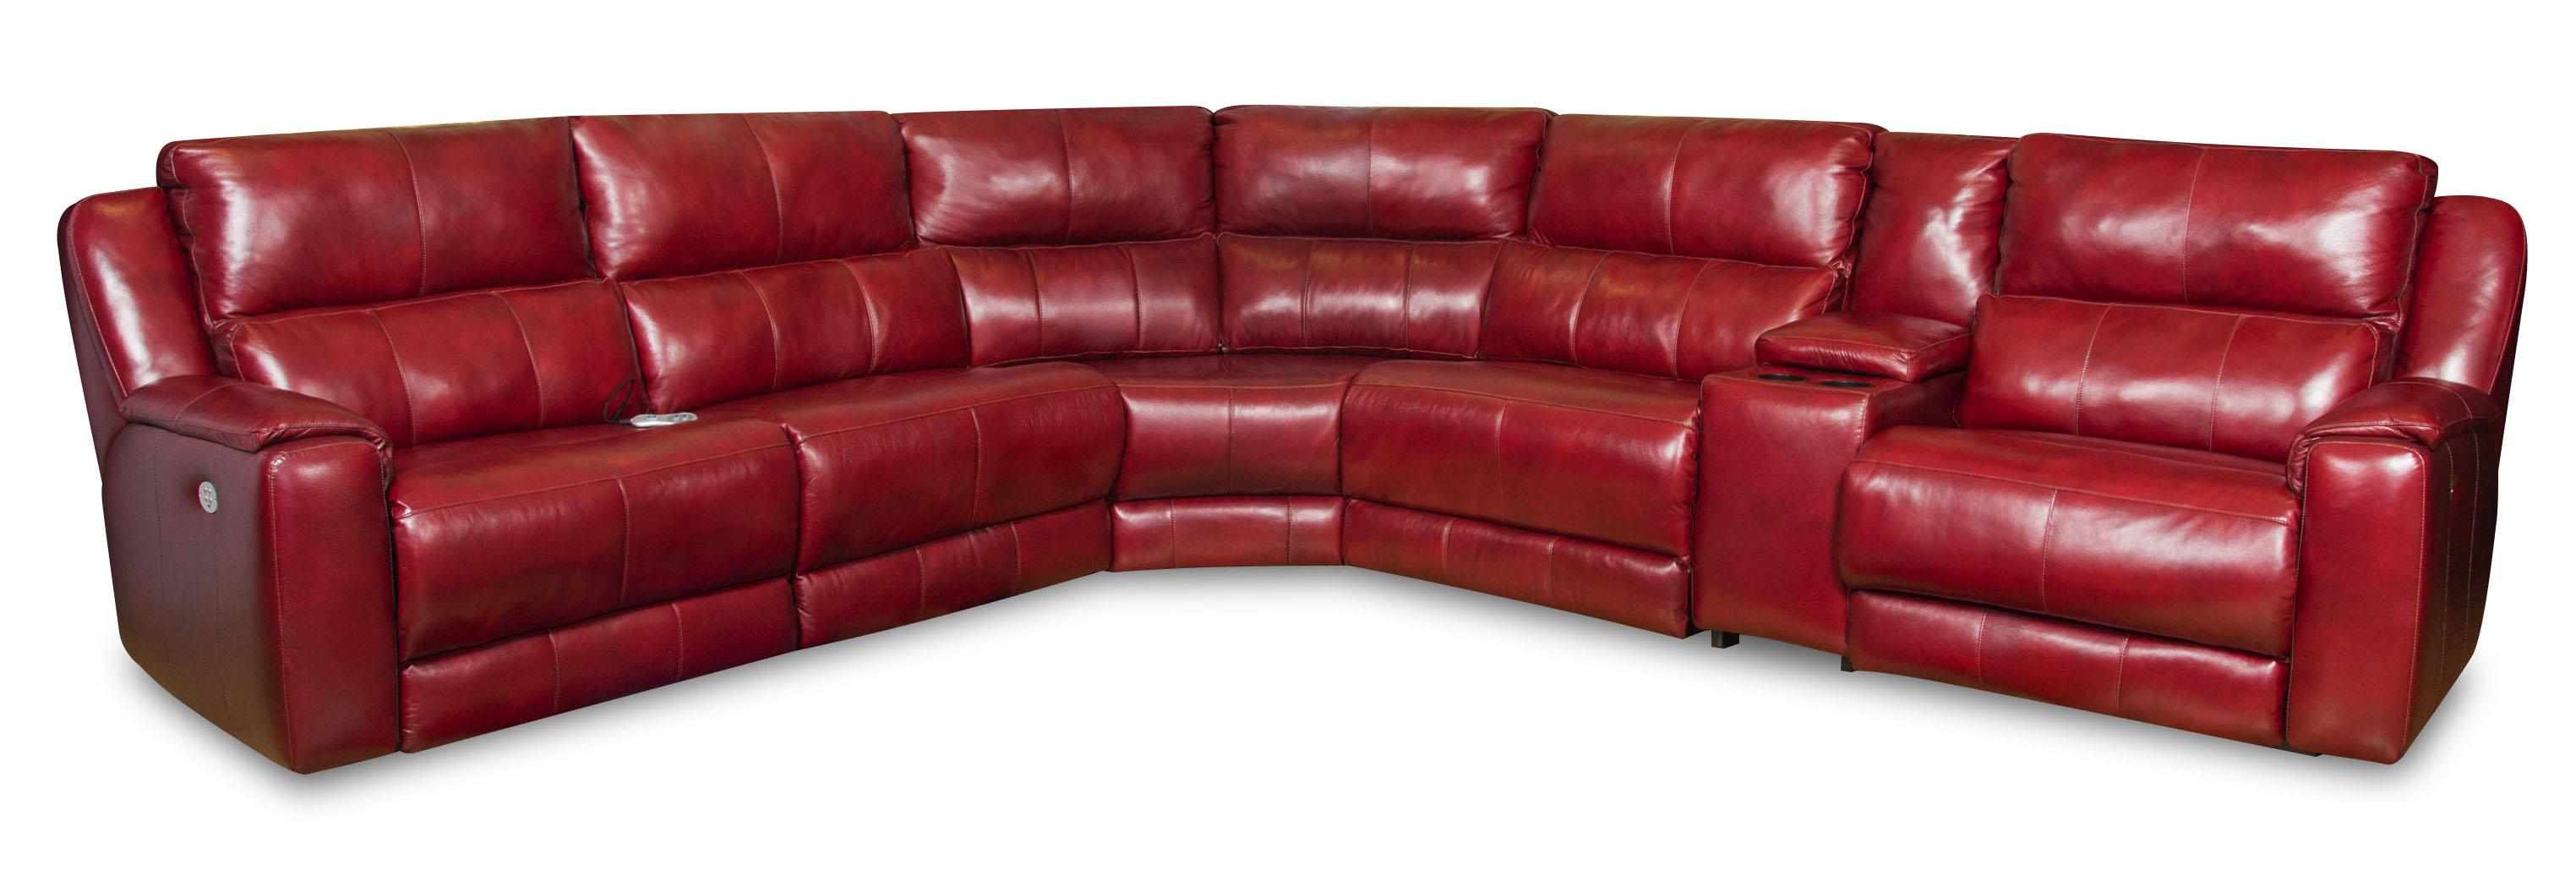 Dazzle Sectional w/ Cup Holders and Power Headrests by Southern Motion at Sparks HomeStore